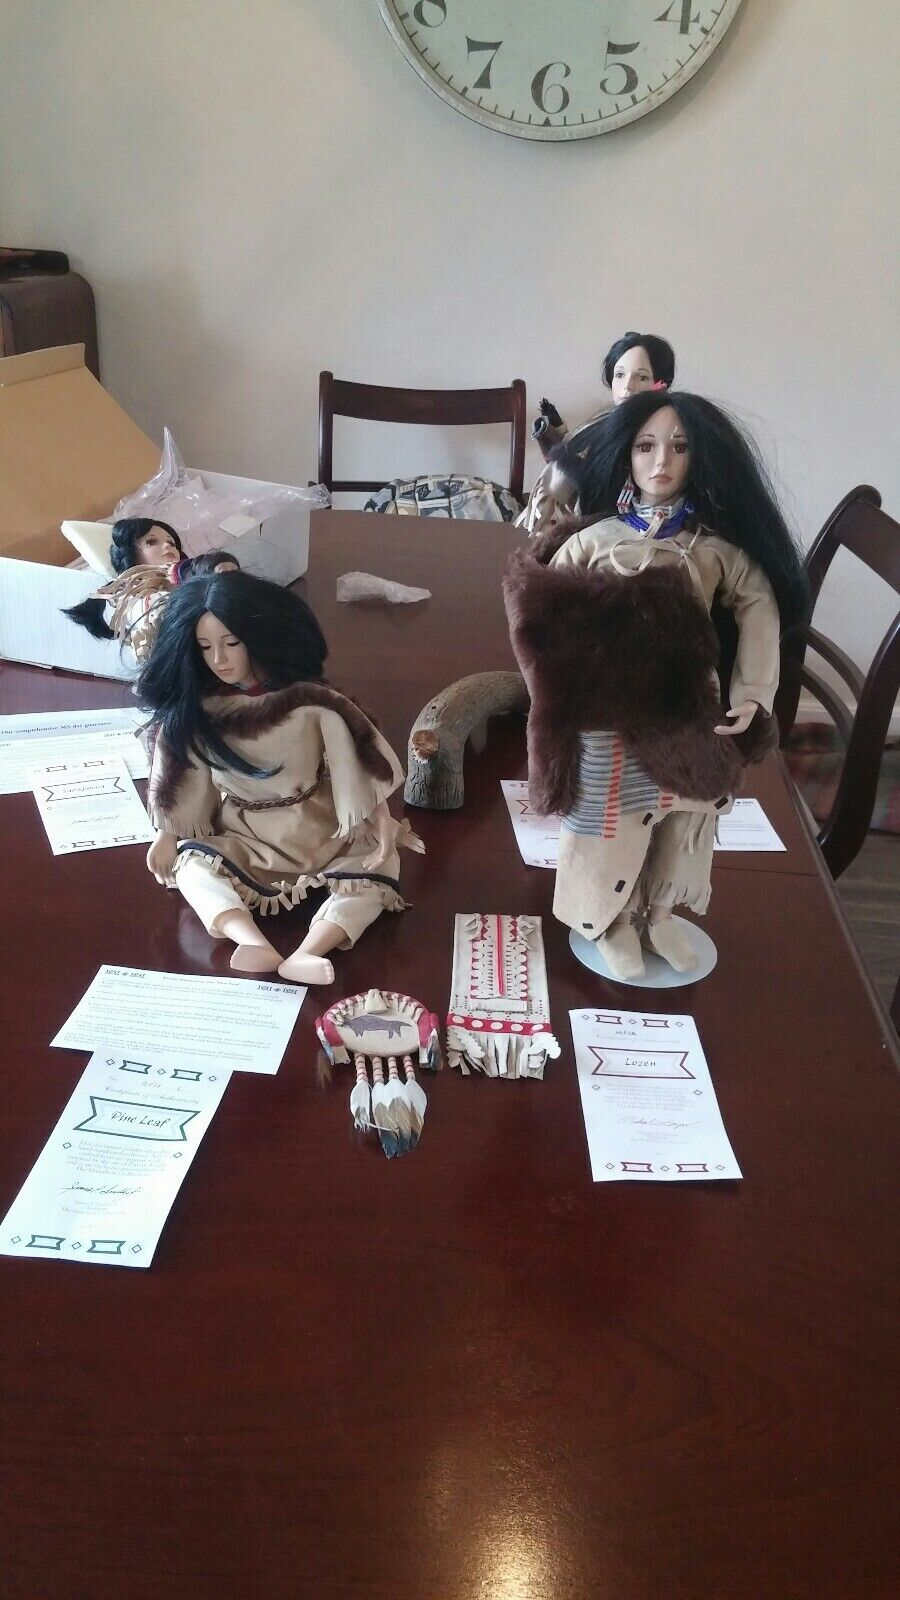 4 native american dolls inspirot by the art of david wright